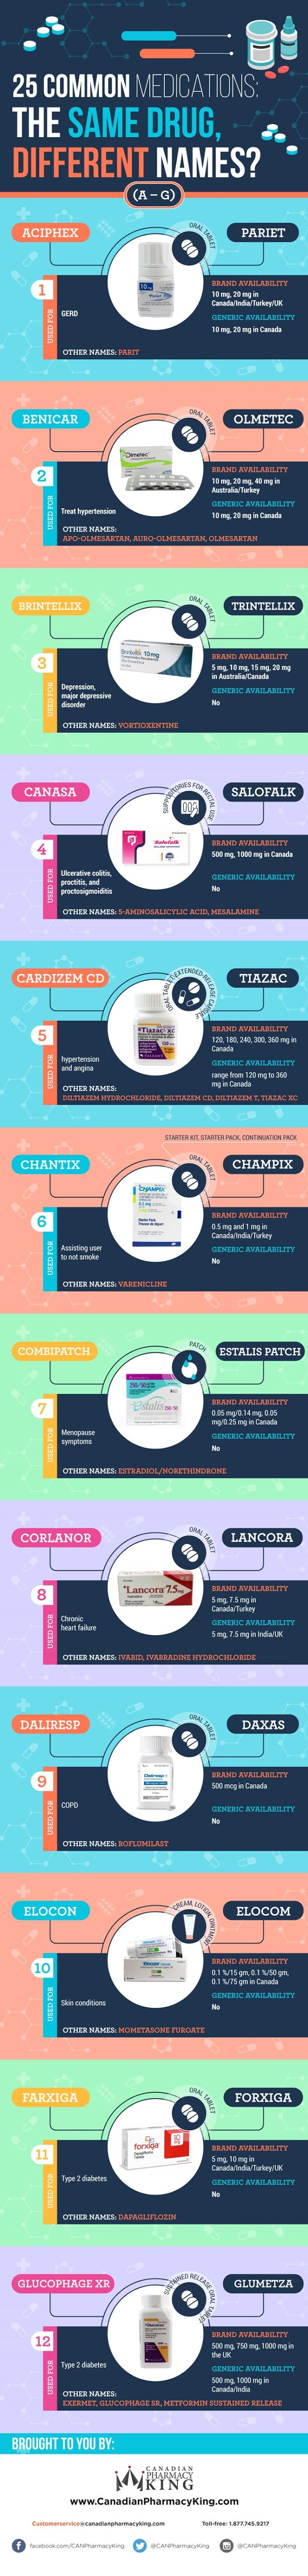 25 Common Medications: The Same Drug, Different Names? #infographic